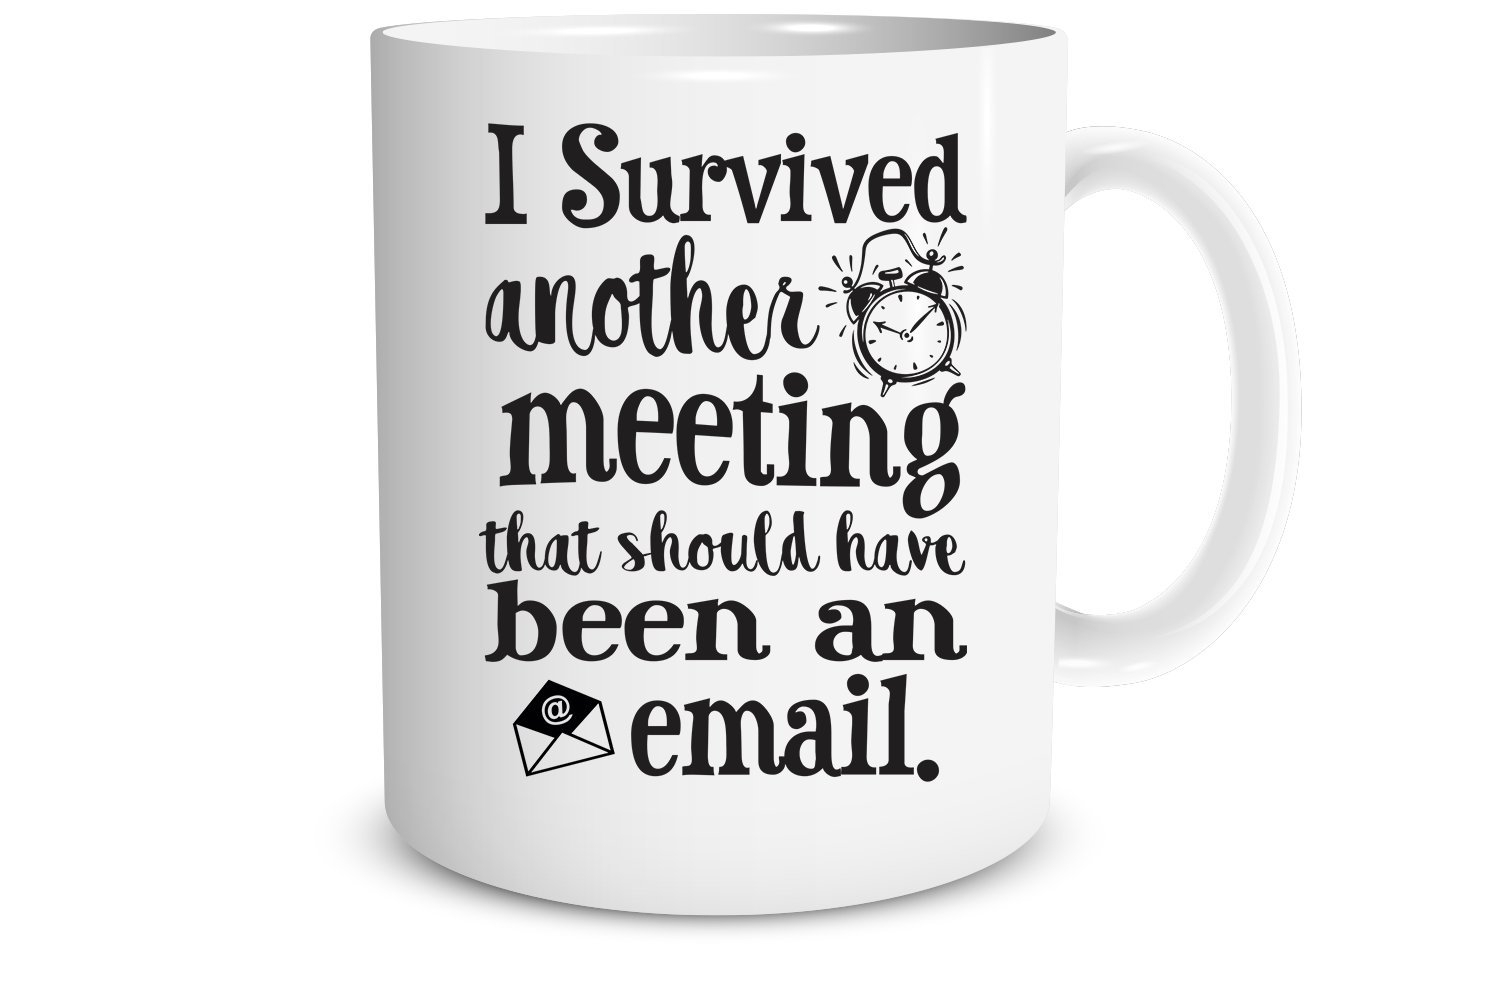 I Survived Another Meeting That Should Have Been an Email 11 oz Funny Office Coffee Mug